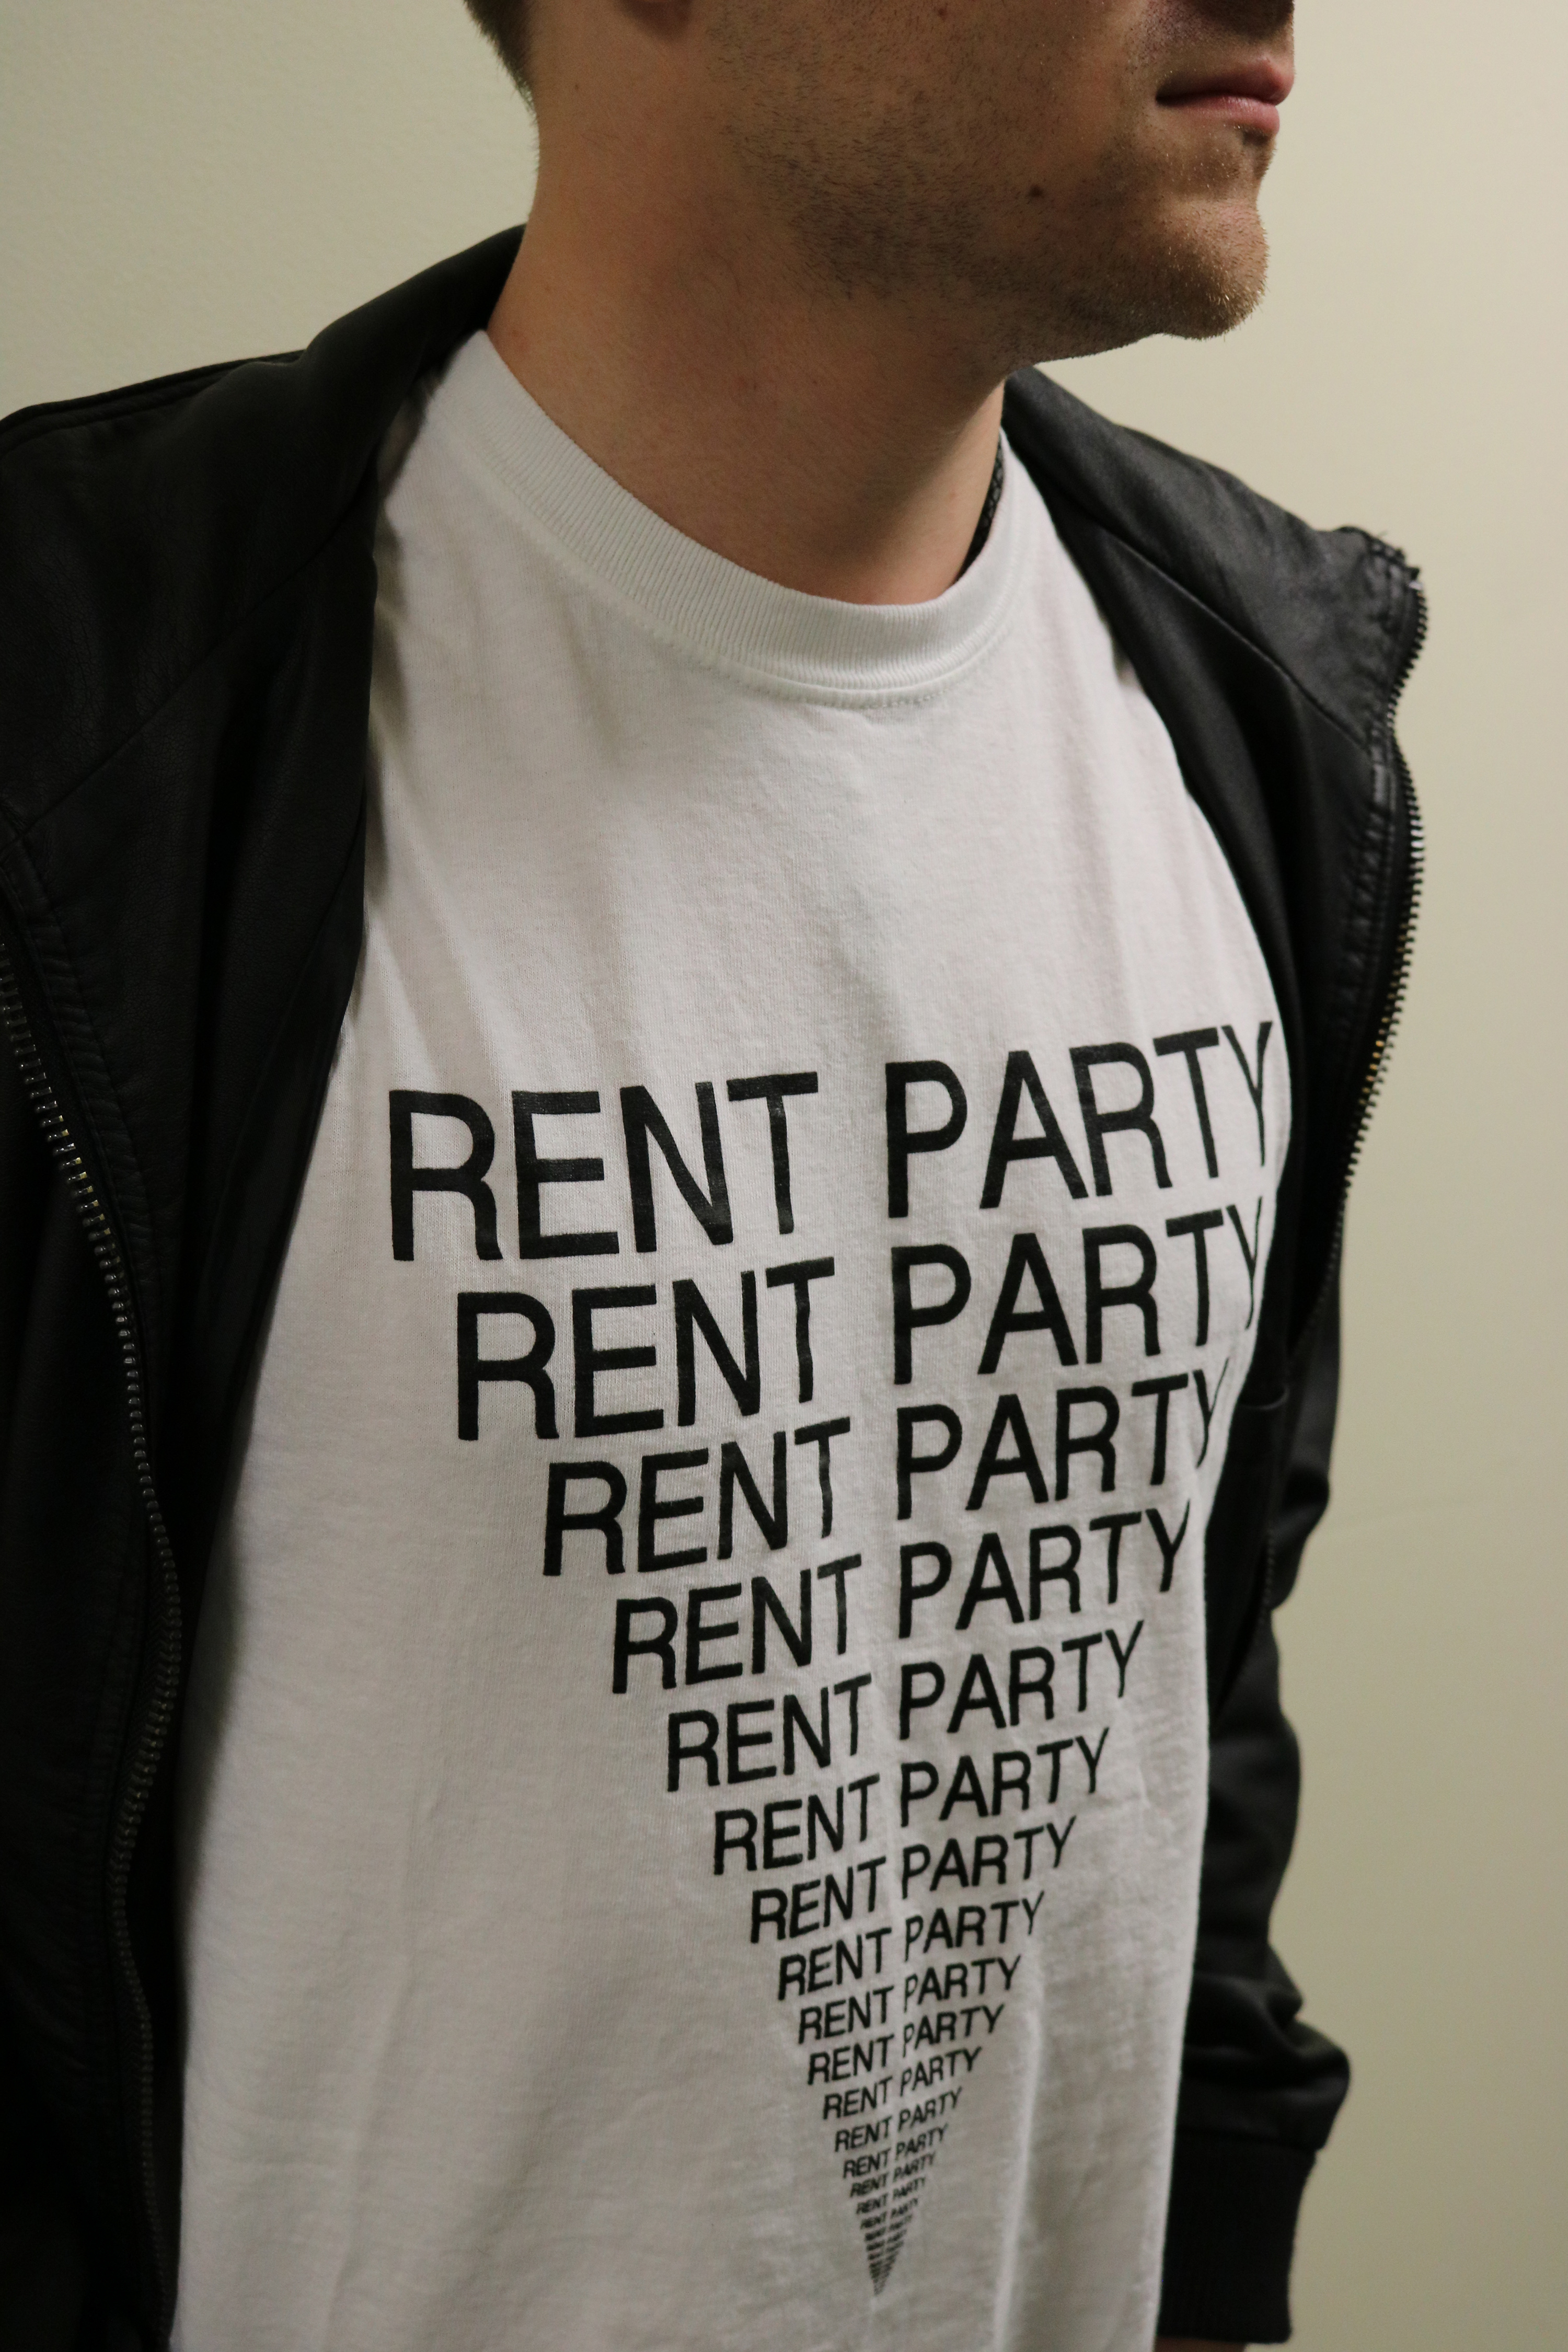 Rent Party Shirts